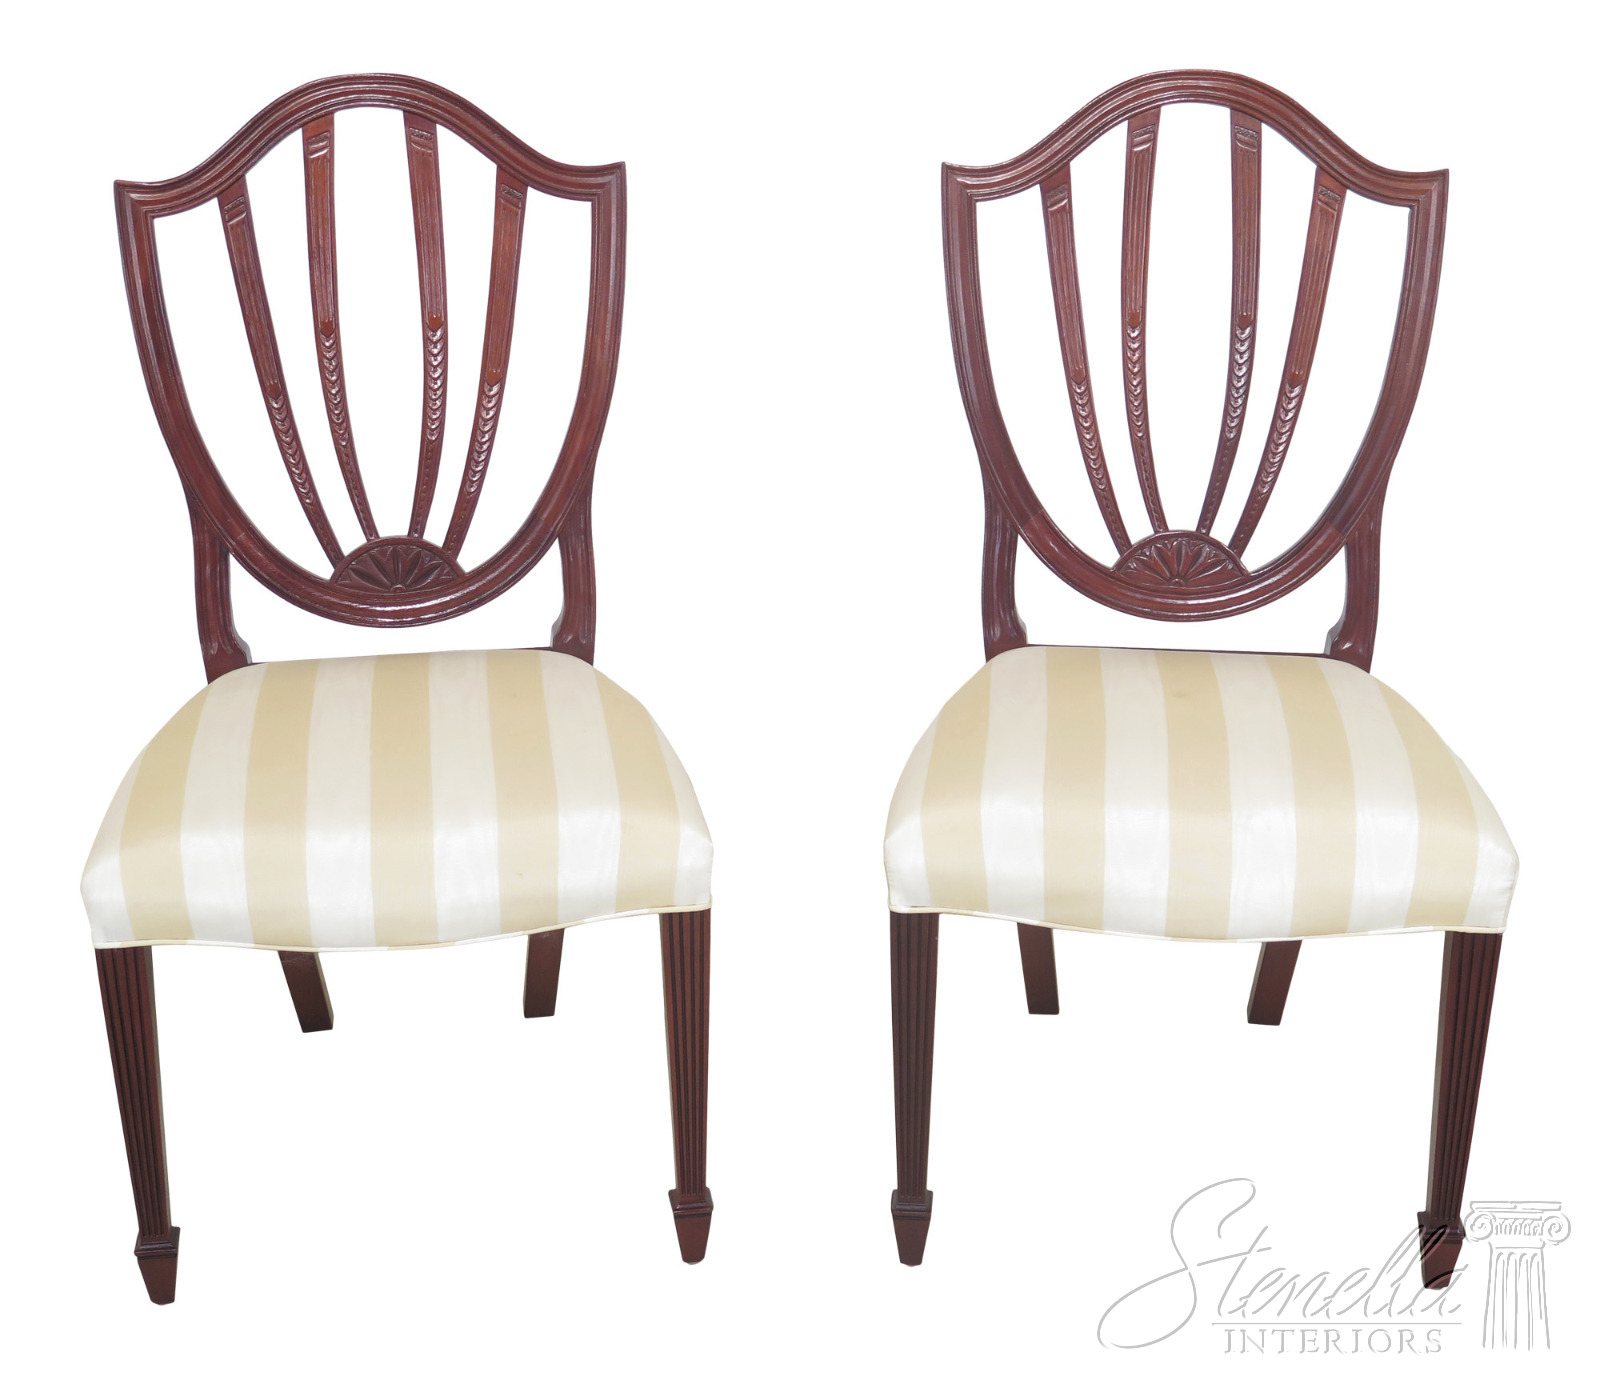 Shield Back Dining Room Chairs: L47350EC: Pair BAKER Shield Back Mahogany Dining Room